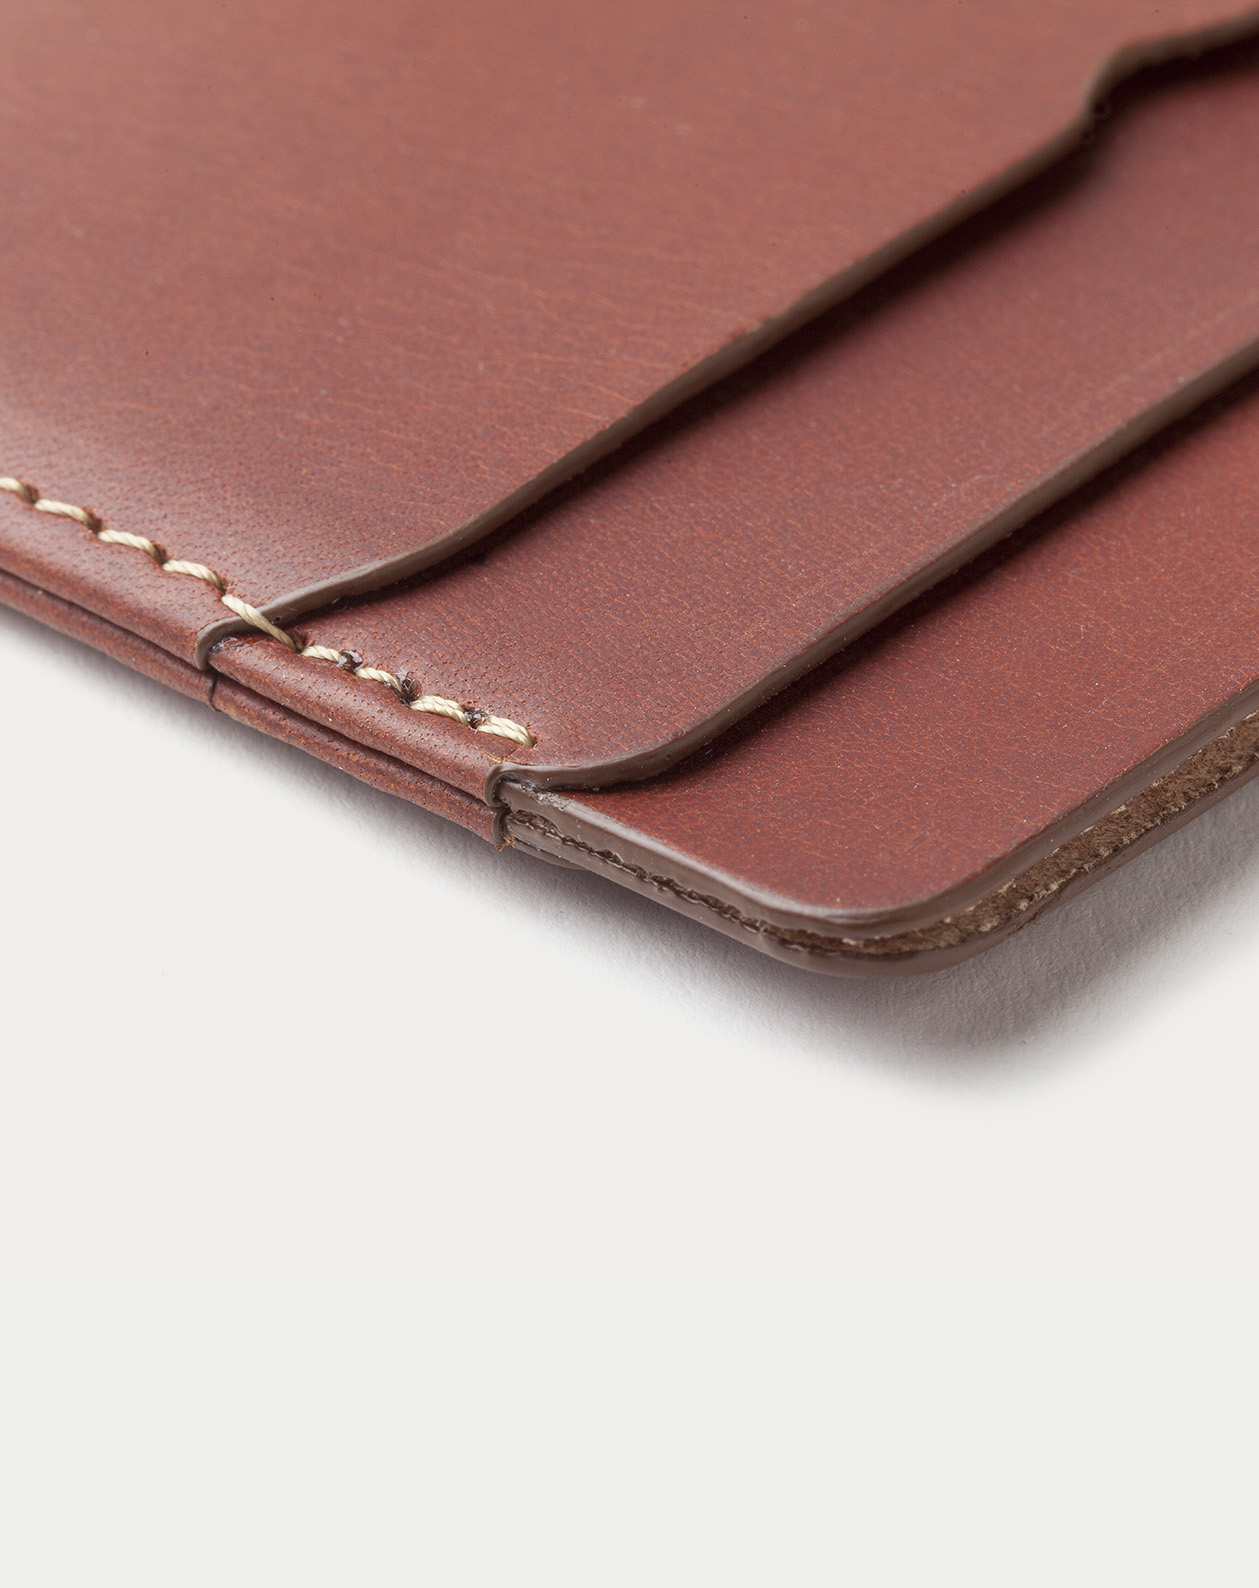 card holder brown for cards and bills